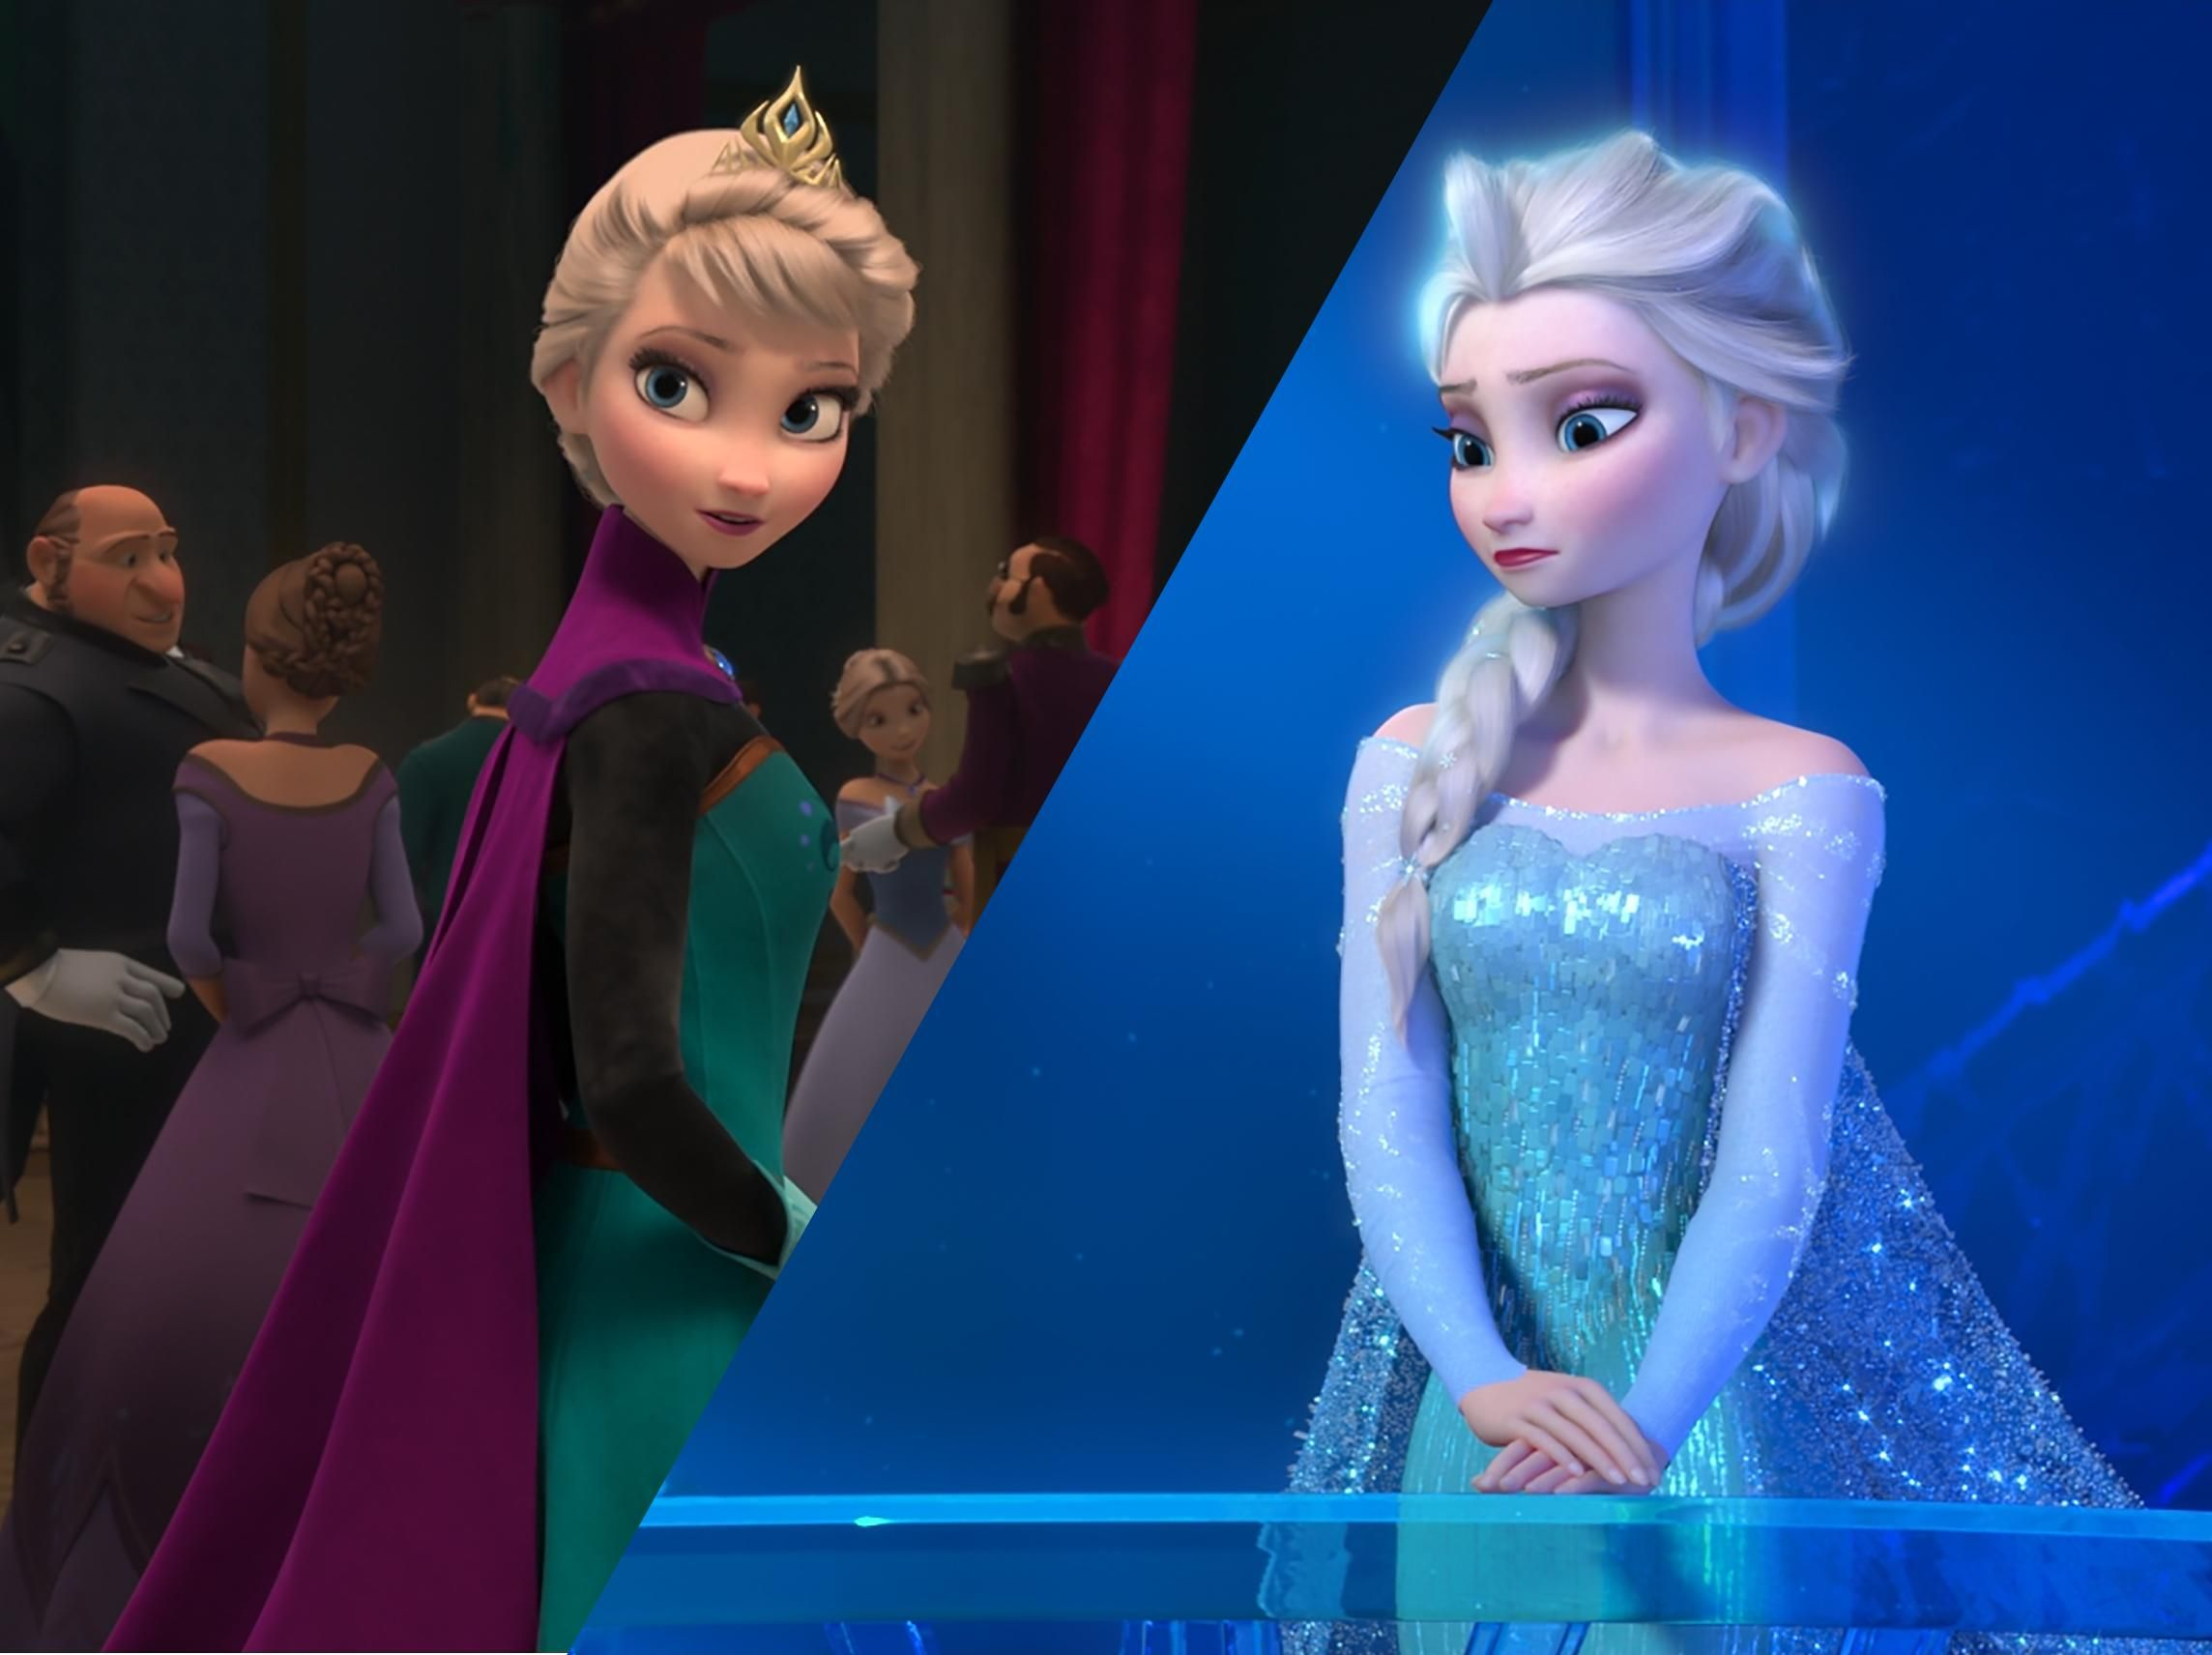 Hair Down Coronation Dress Elsa At Her Ice Palace From R Frozen R Queenelsa Frozen Disney Movie Frozen Fever Elsa Disney Princess